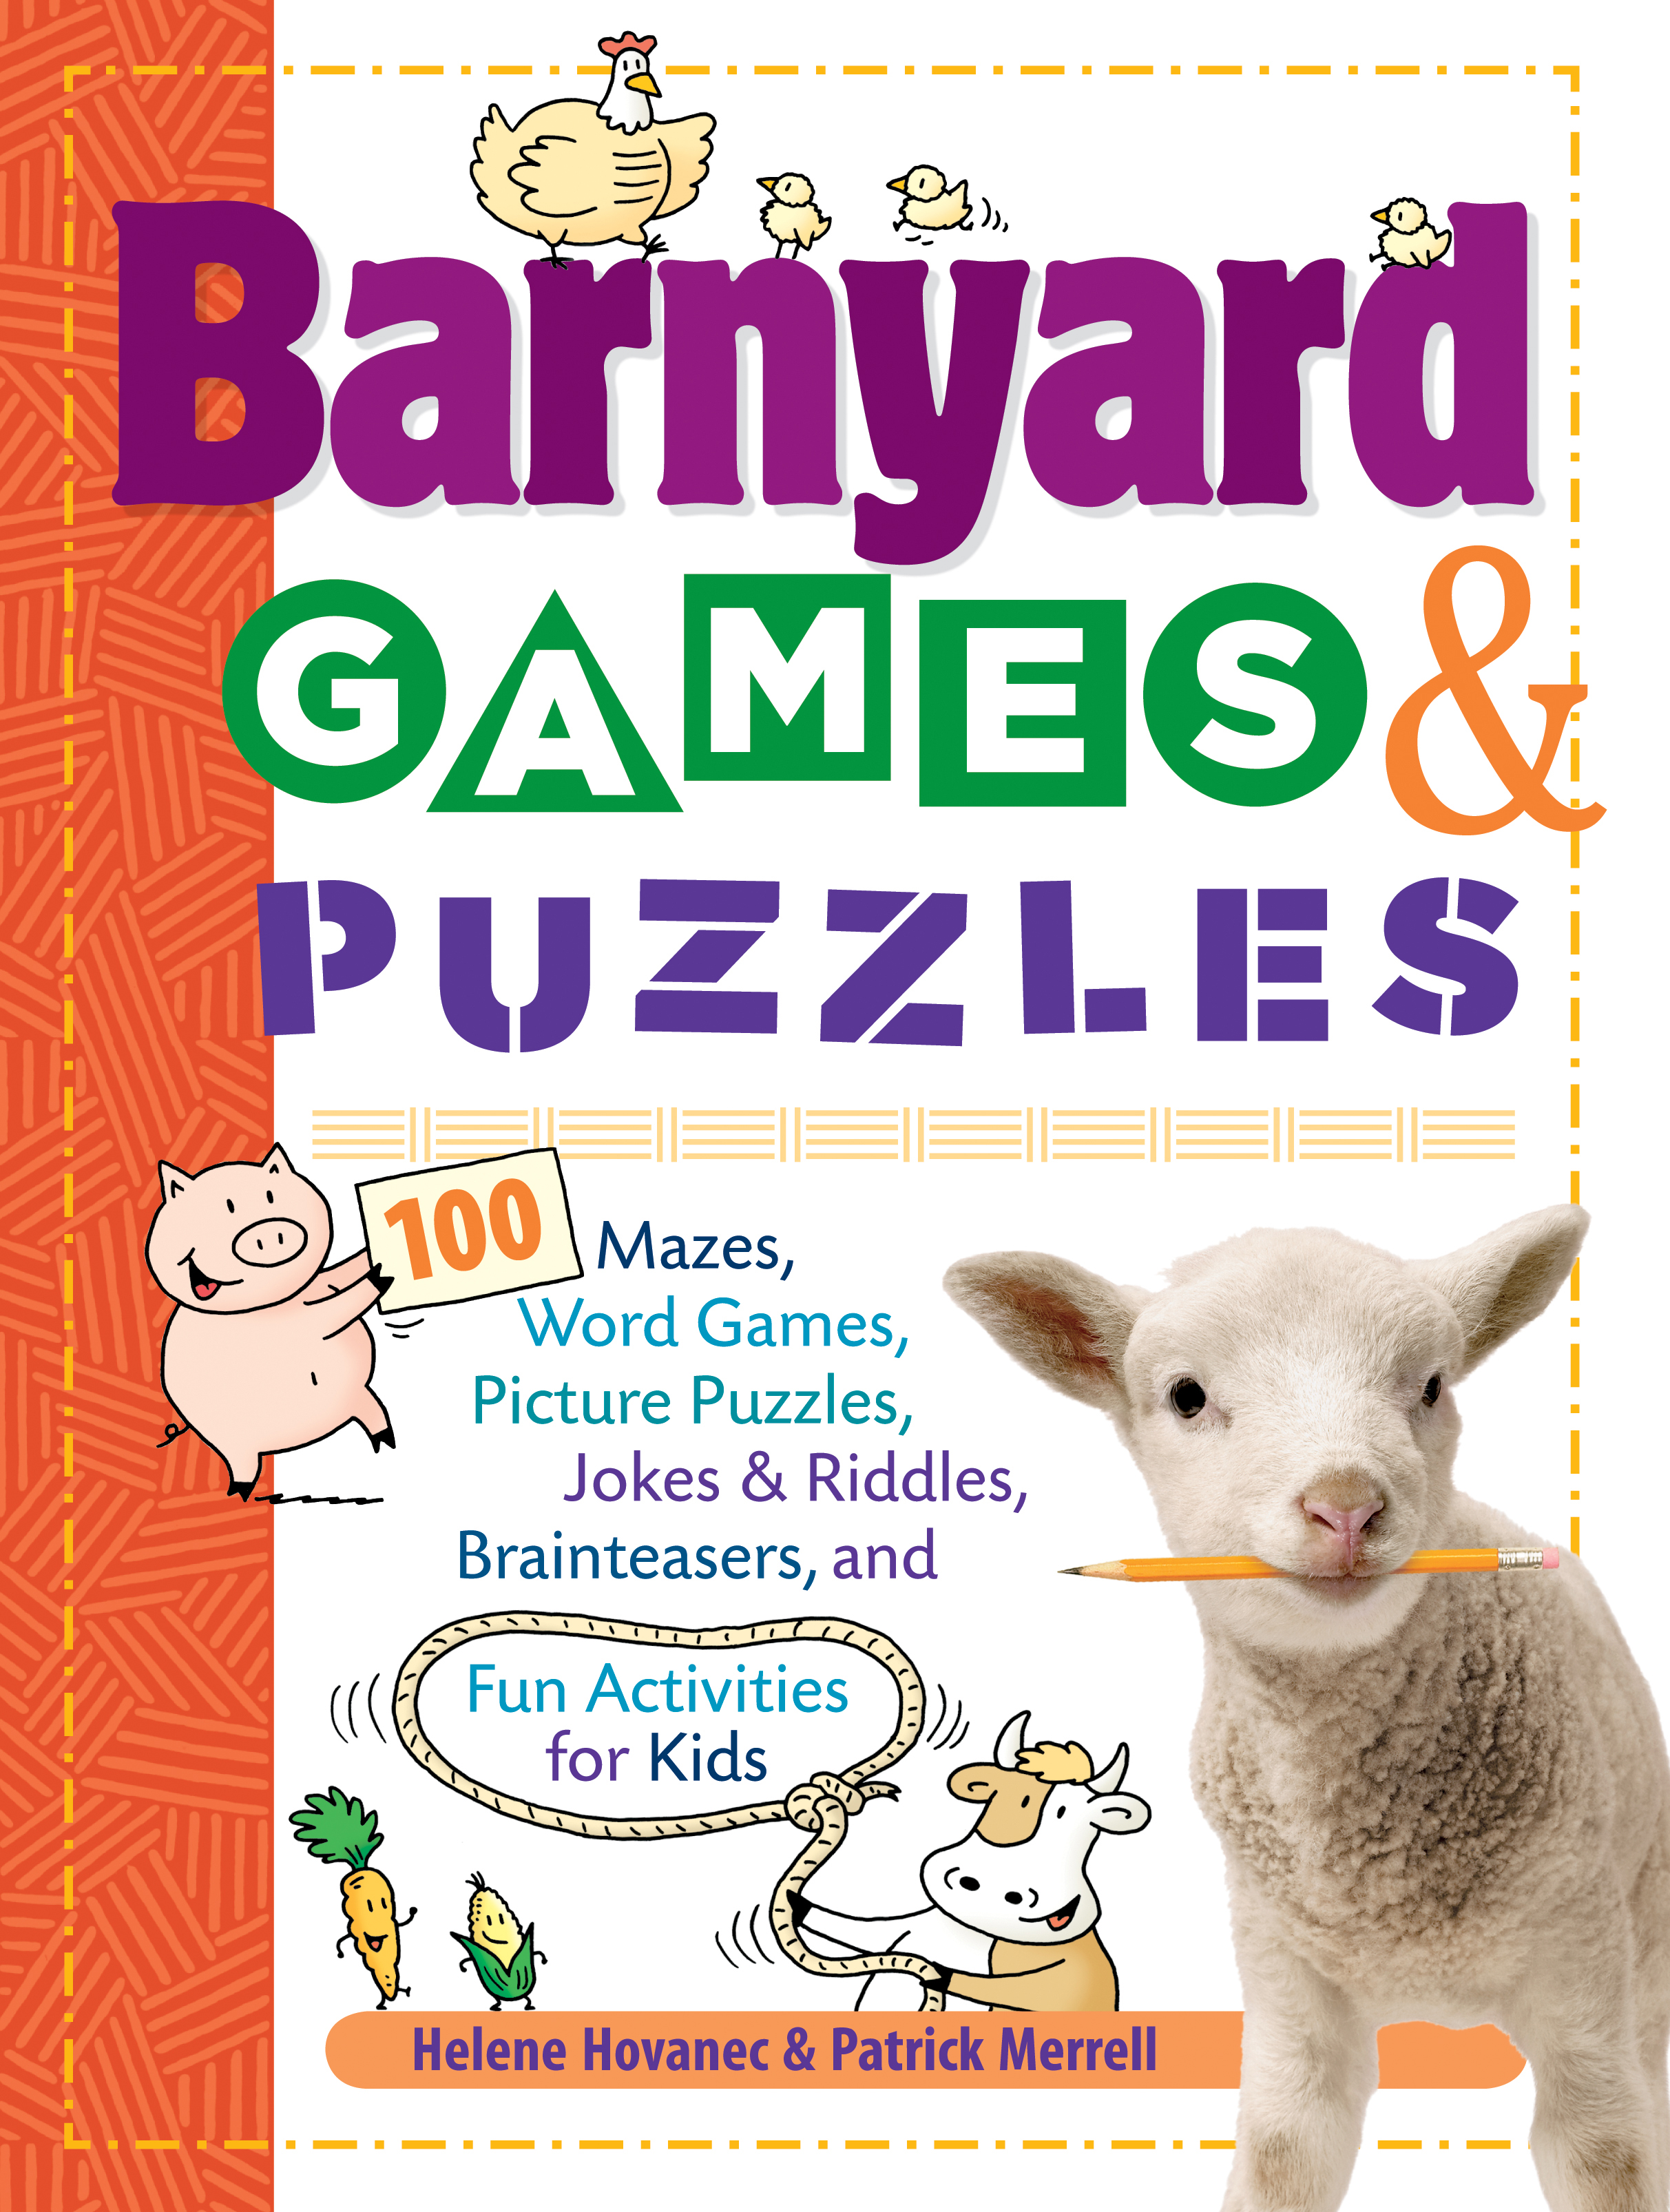 Barnyard Games & Puzzles 100 Mazes, Word Games, Picture Puzzles, Jokes and Riddles, Brainteasers, and Fun Activities for Kids - Helene Hovanec